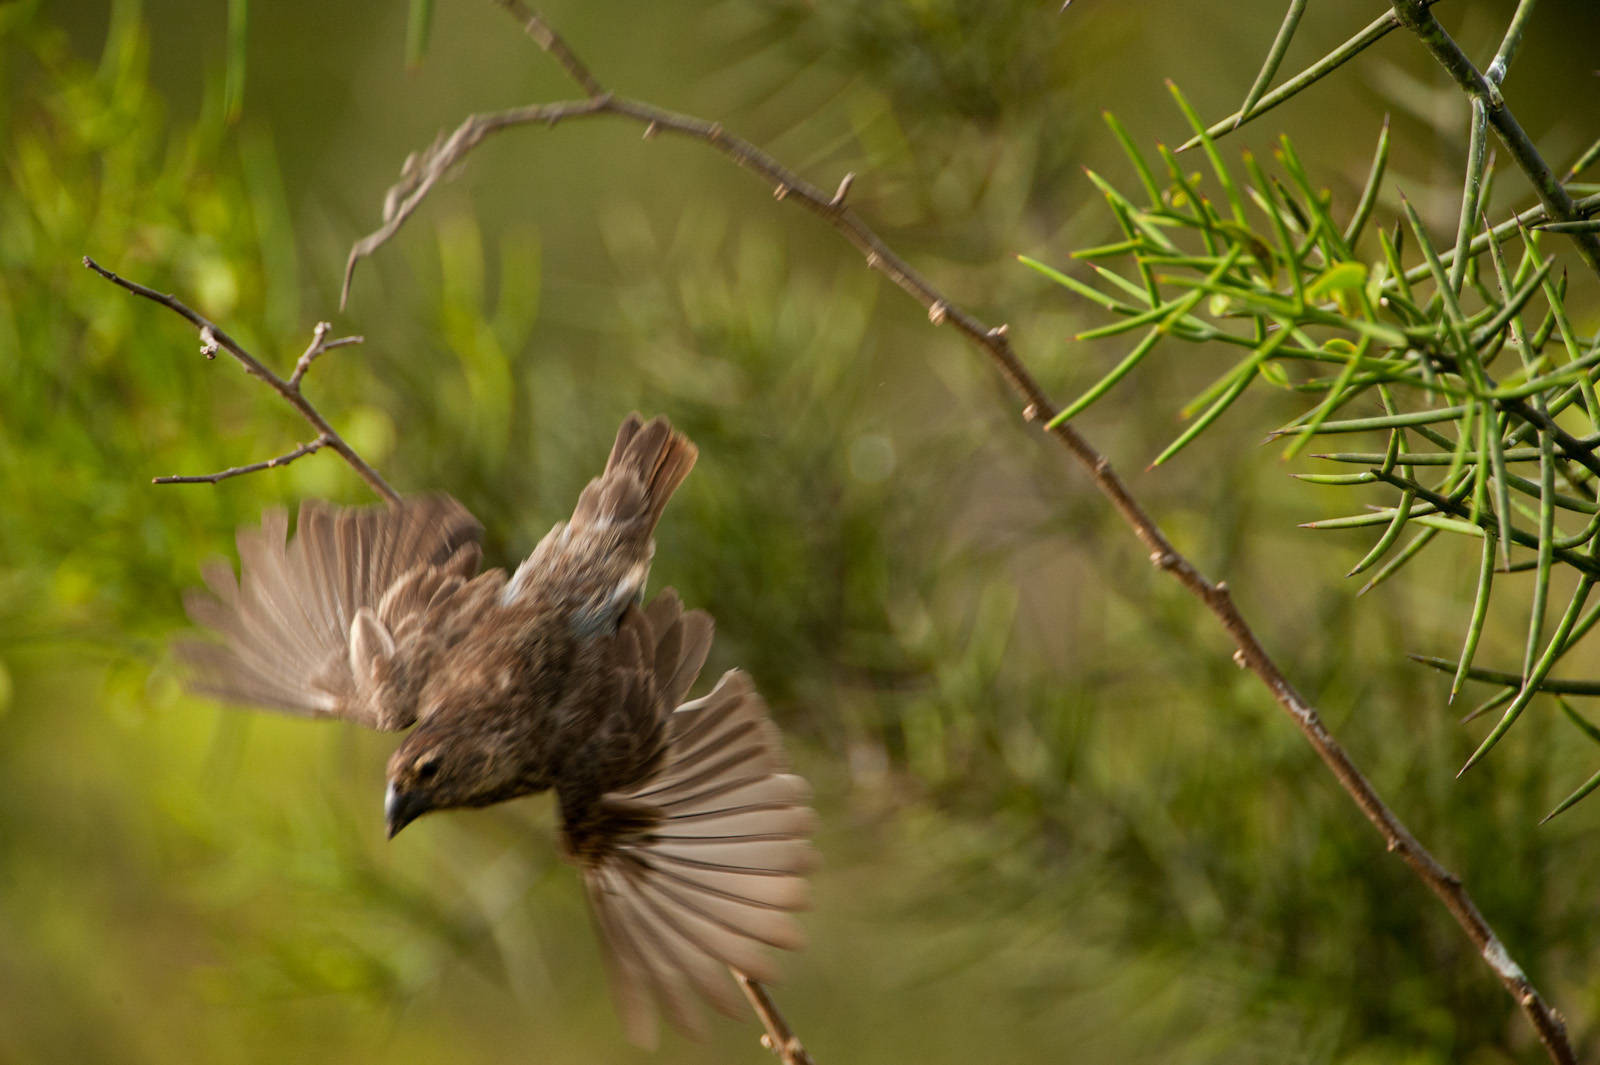 Photo: A large ground finch (Geospiza magnirostris) in flight on Urbina Bay, Isabela Island in Galapagos National Park.